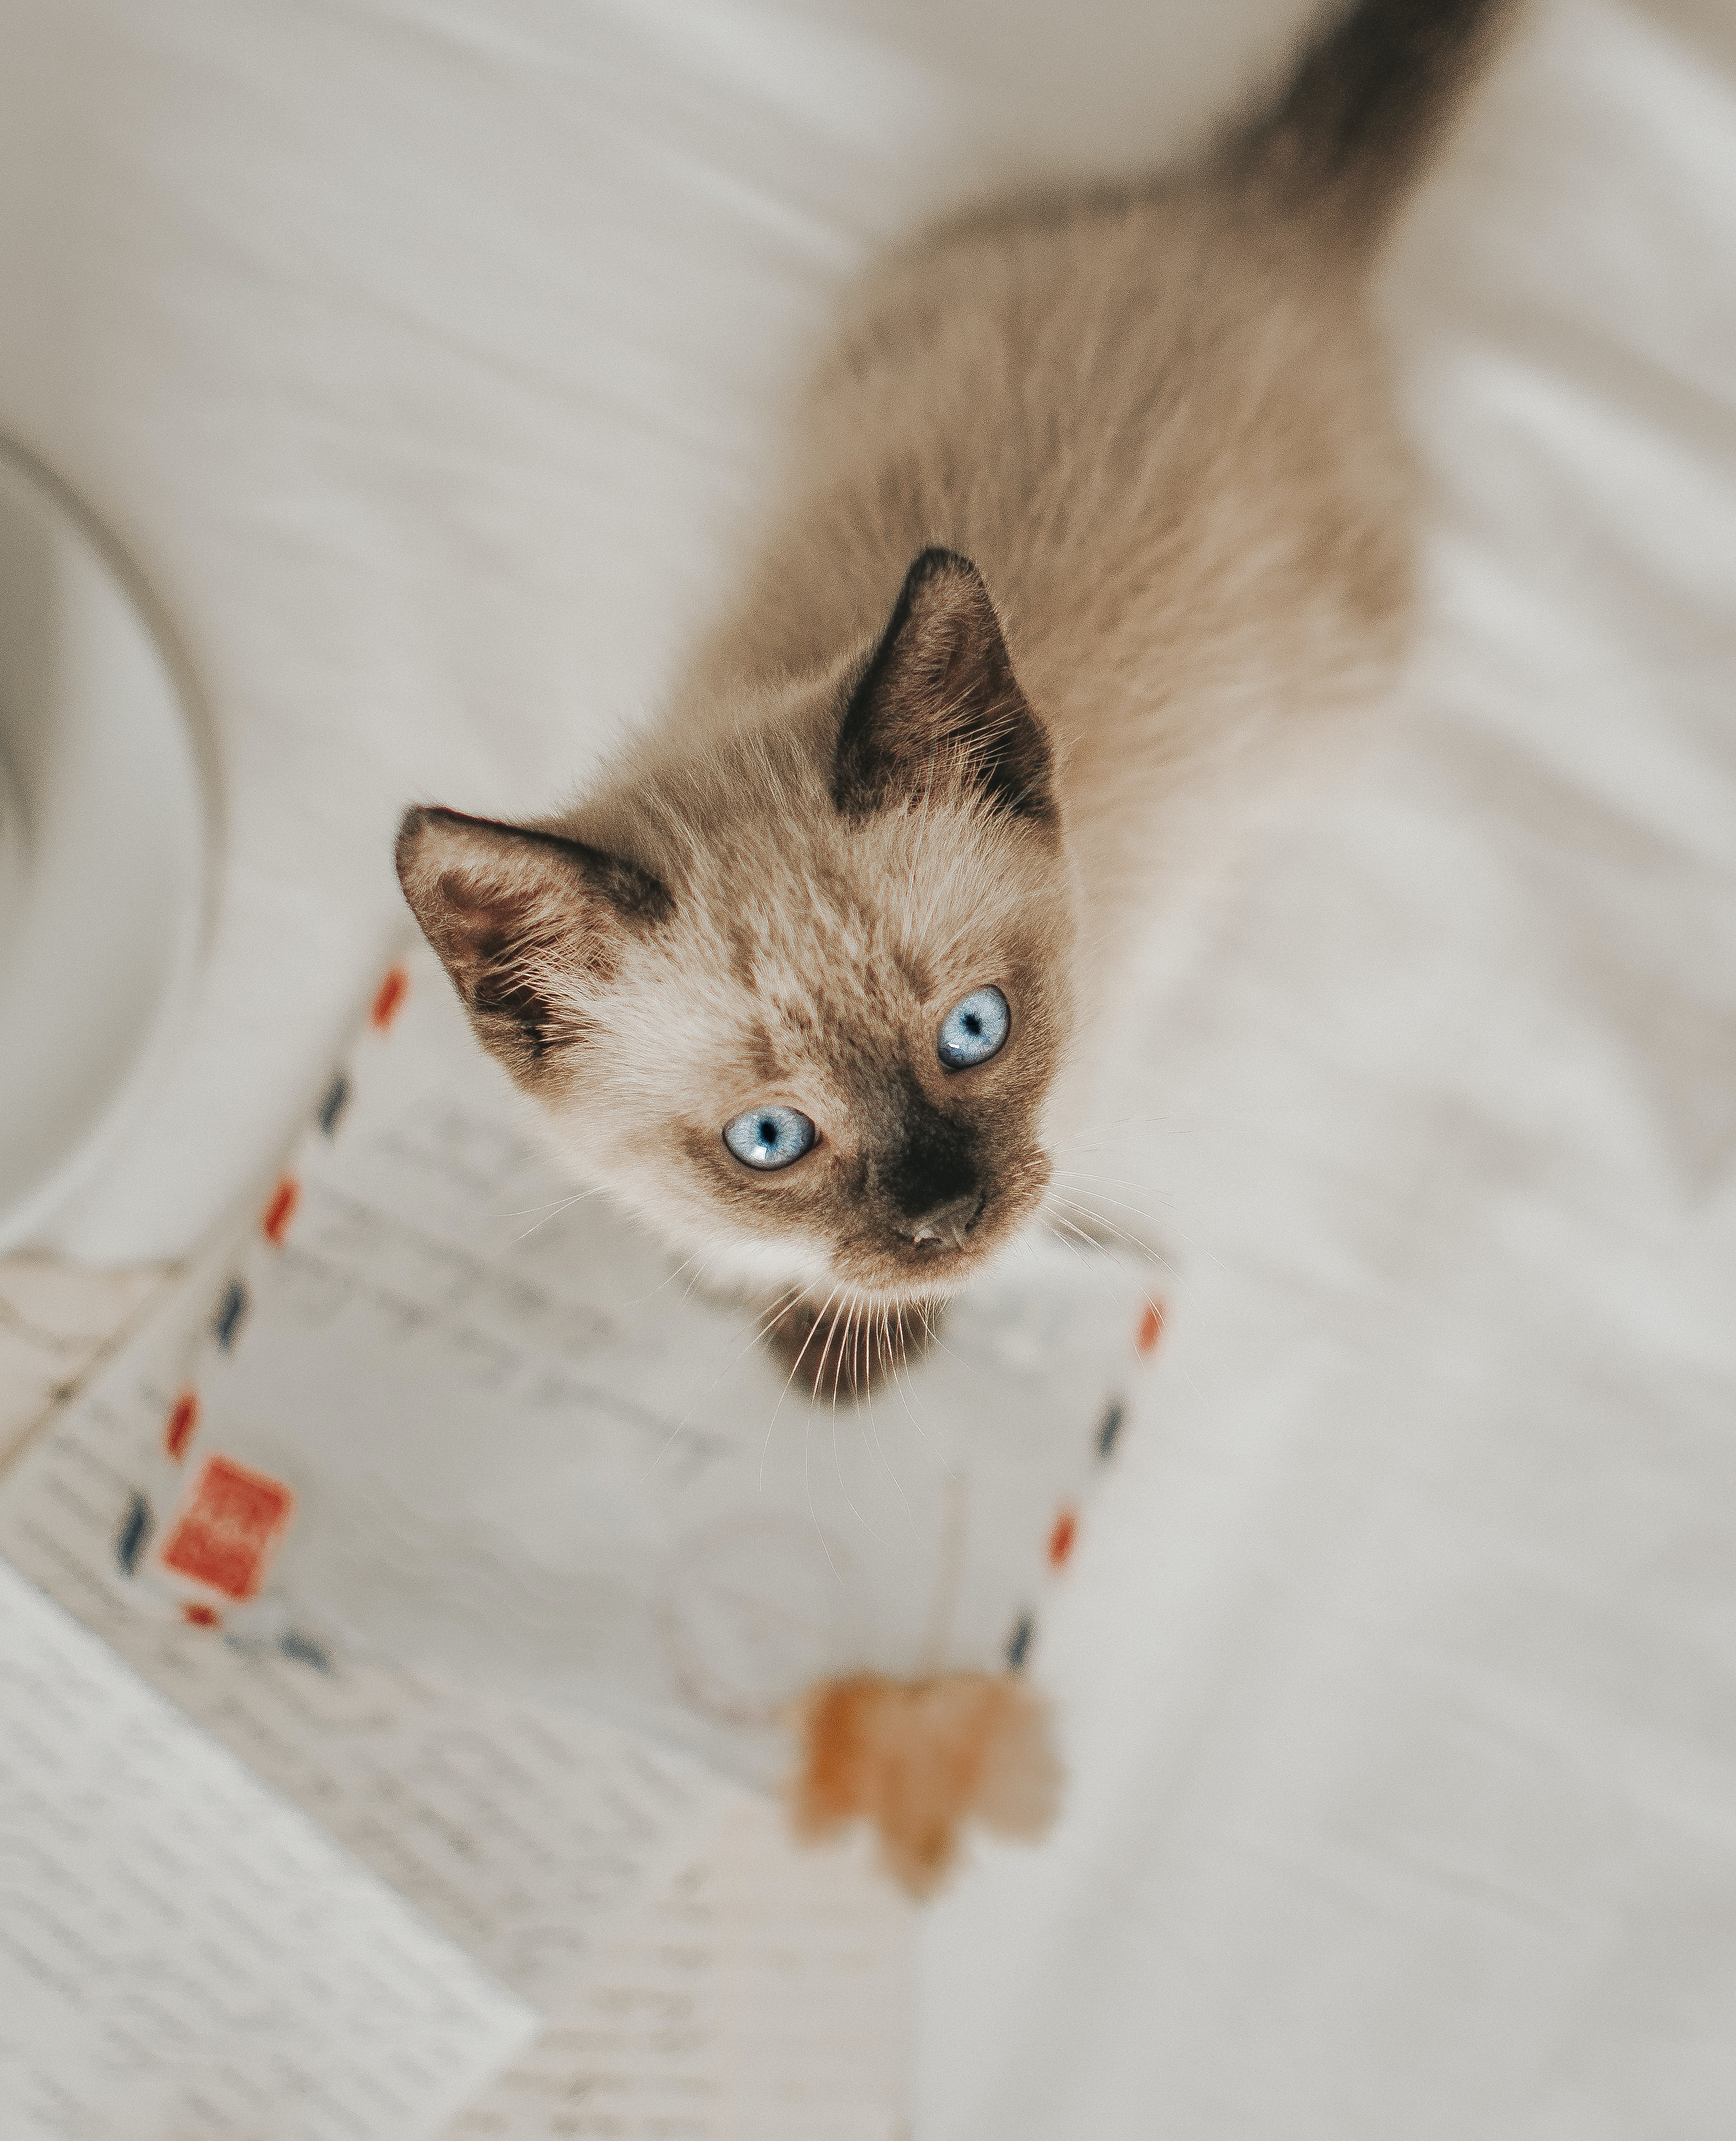 Siamese cat standing on white paper